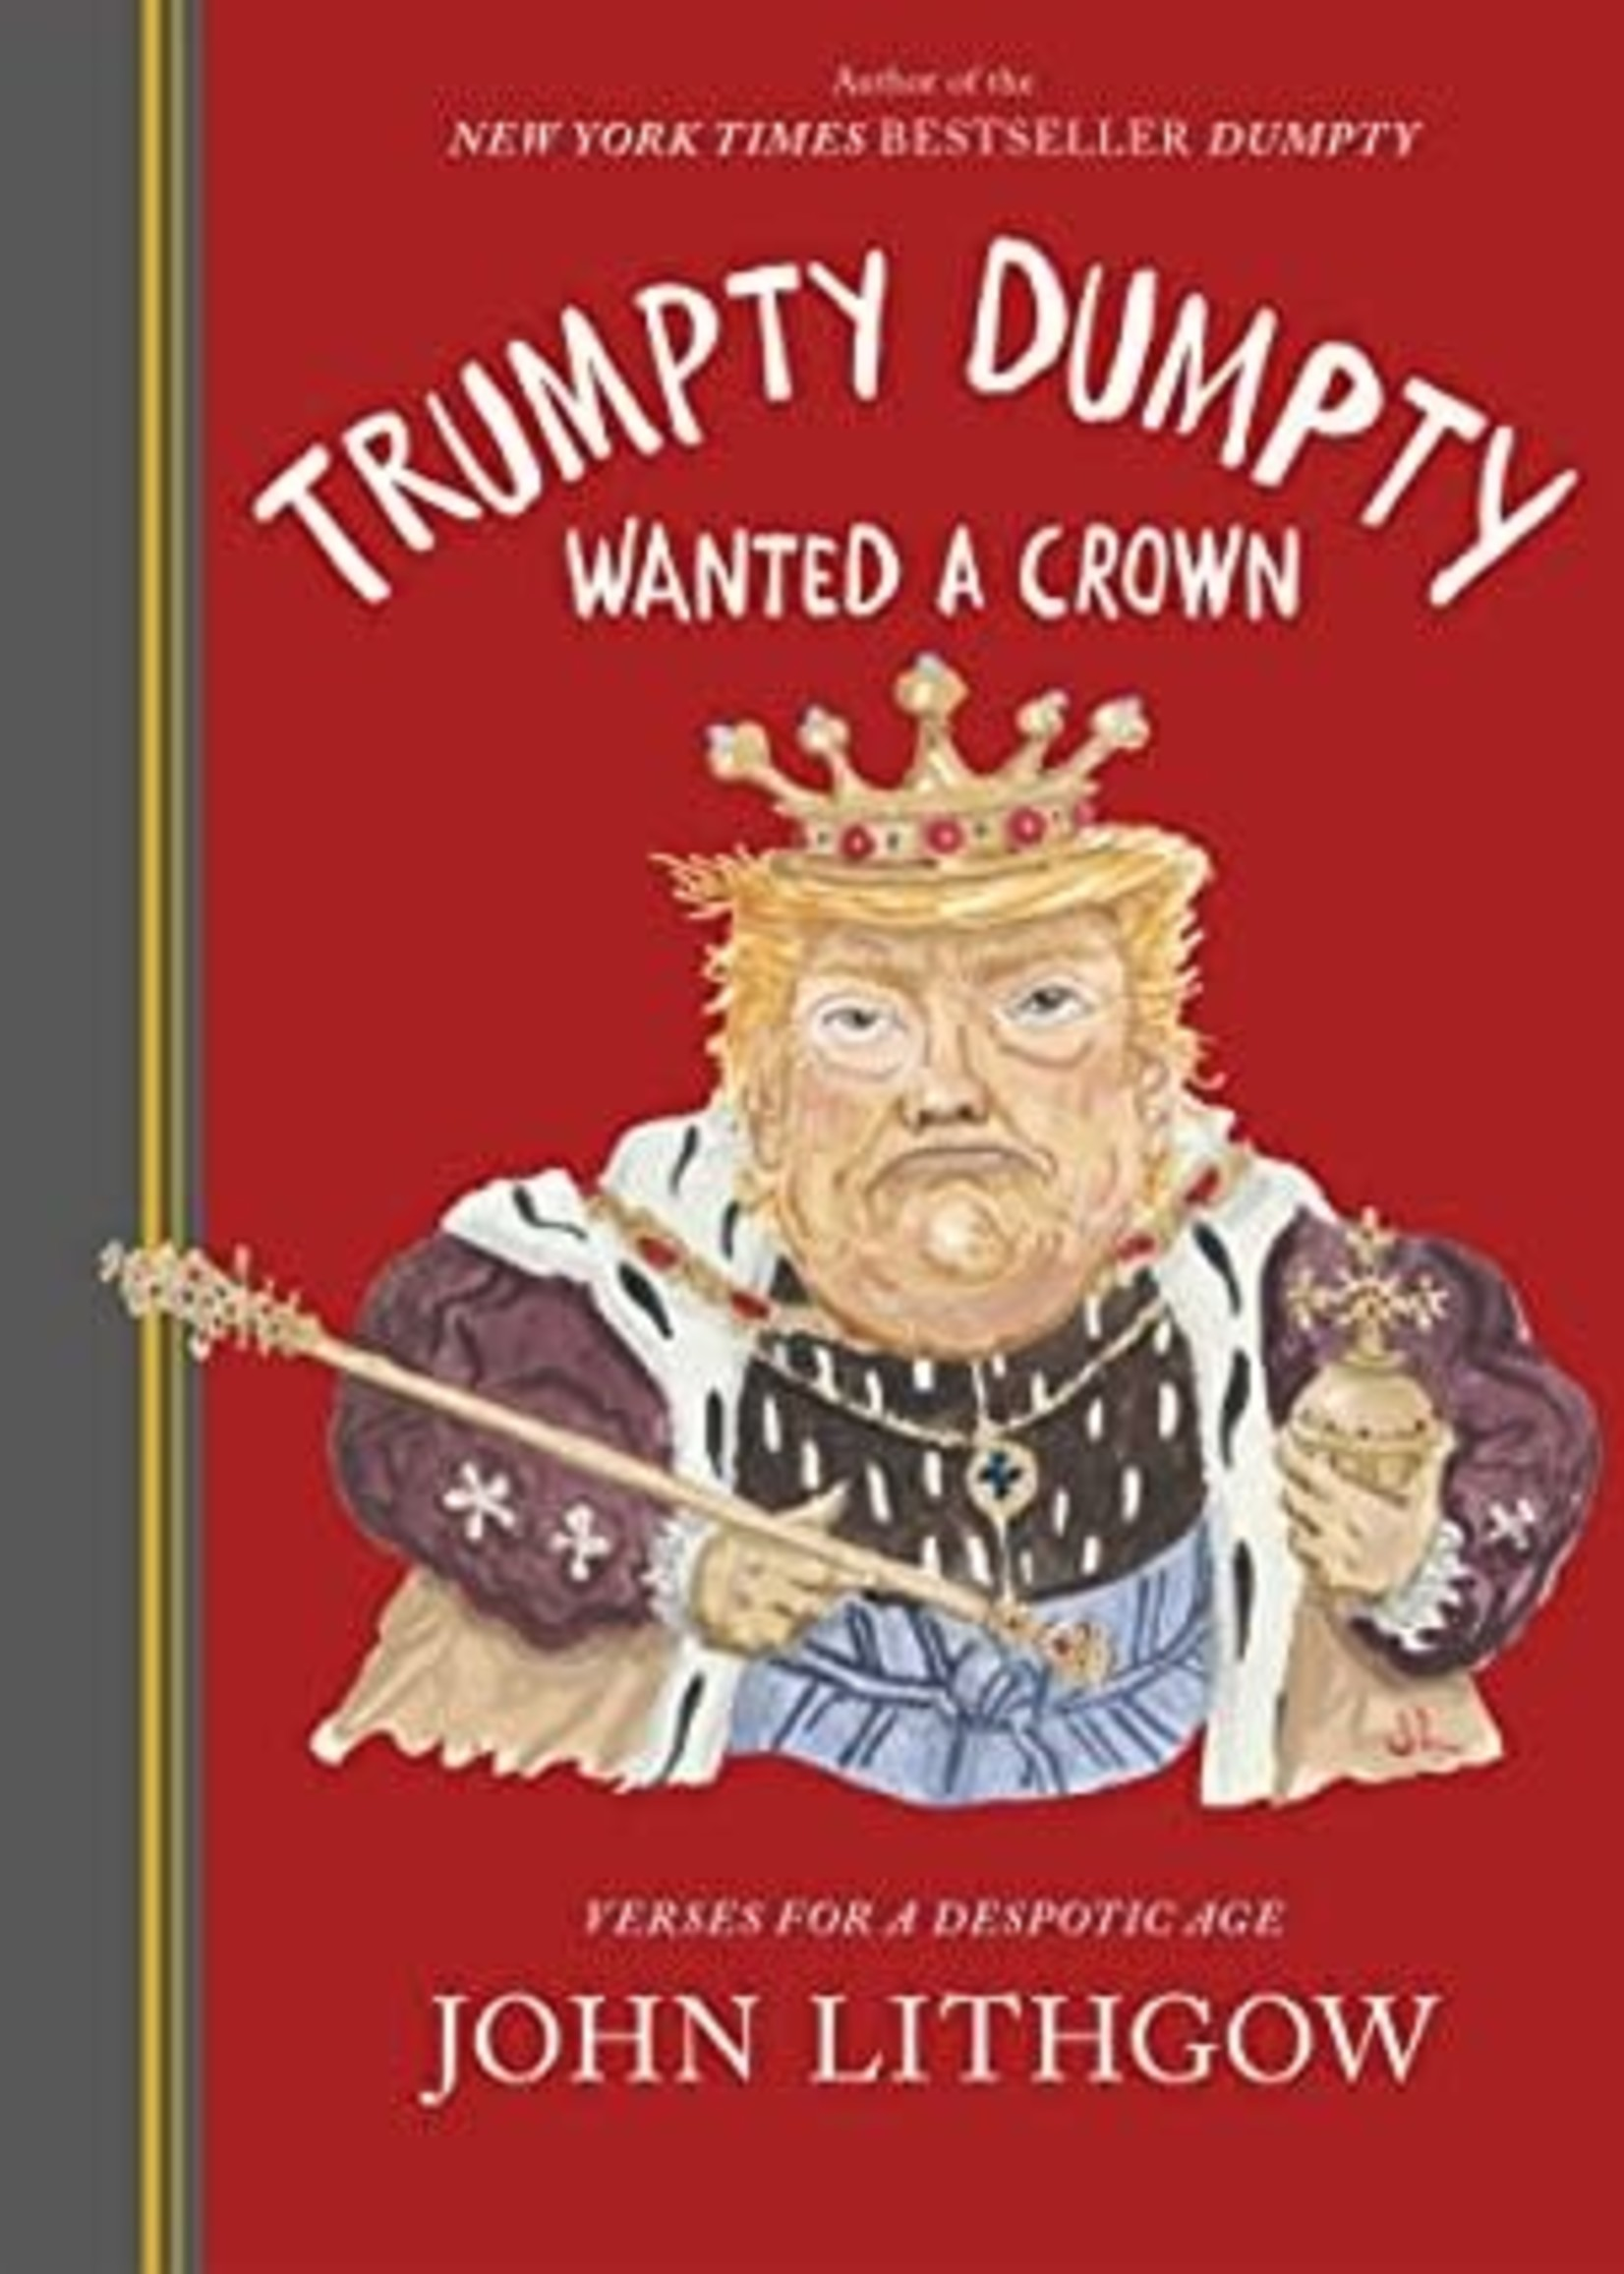 Trumpty Dumpty Wanted a Crown (Signed Book):  Verses for a Despotic Age by John Lithgow